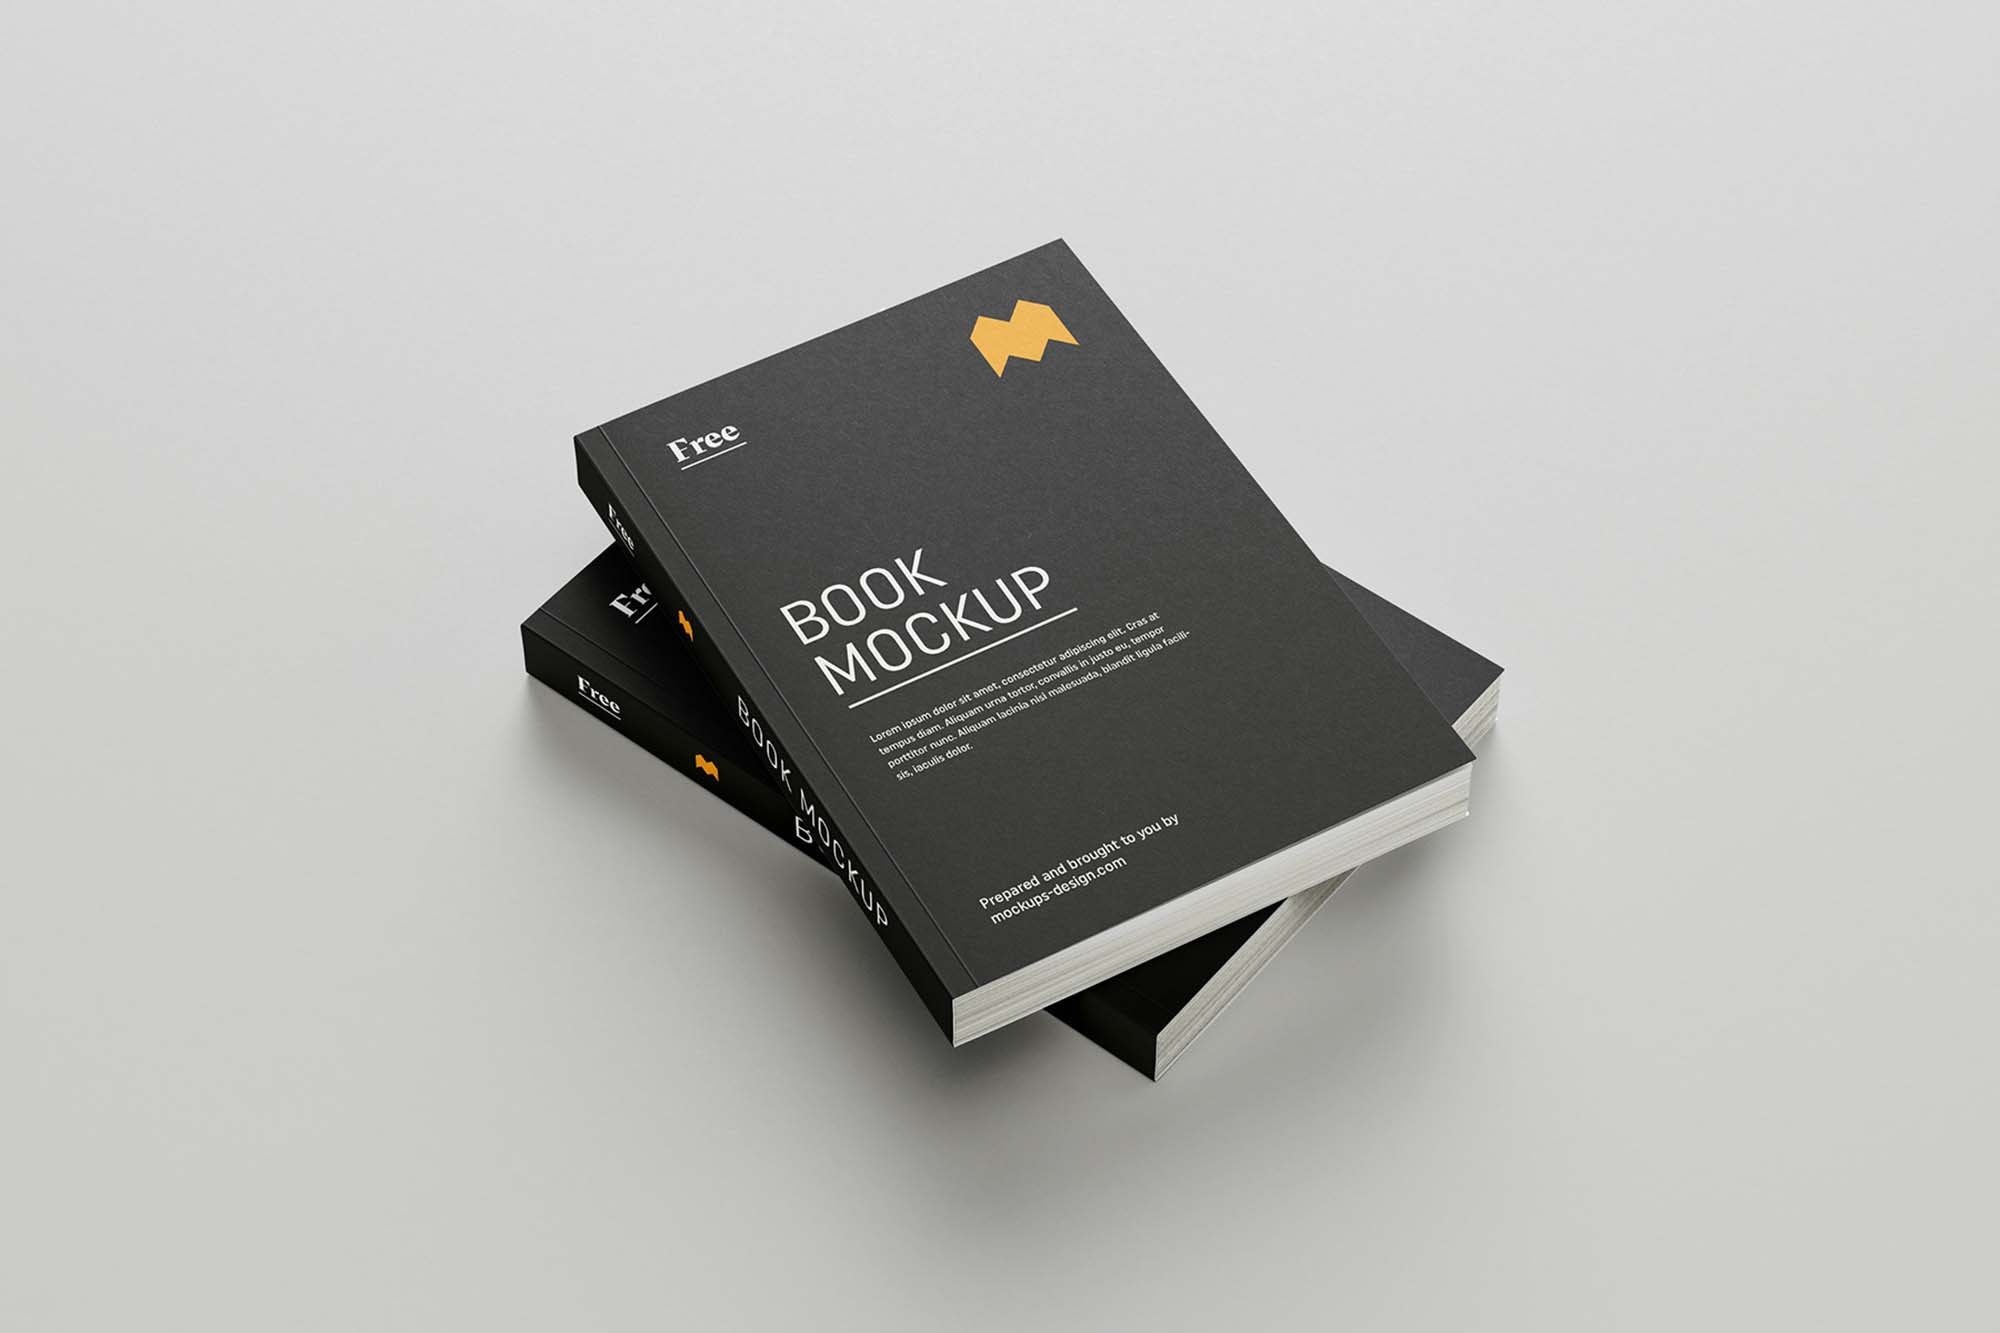 Softcover Book Mockup 4